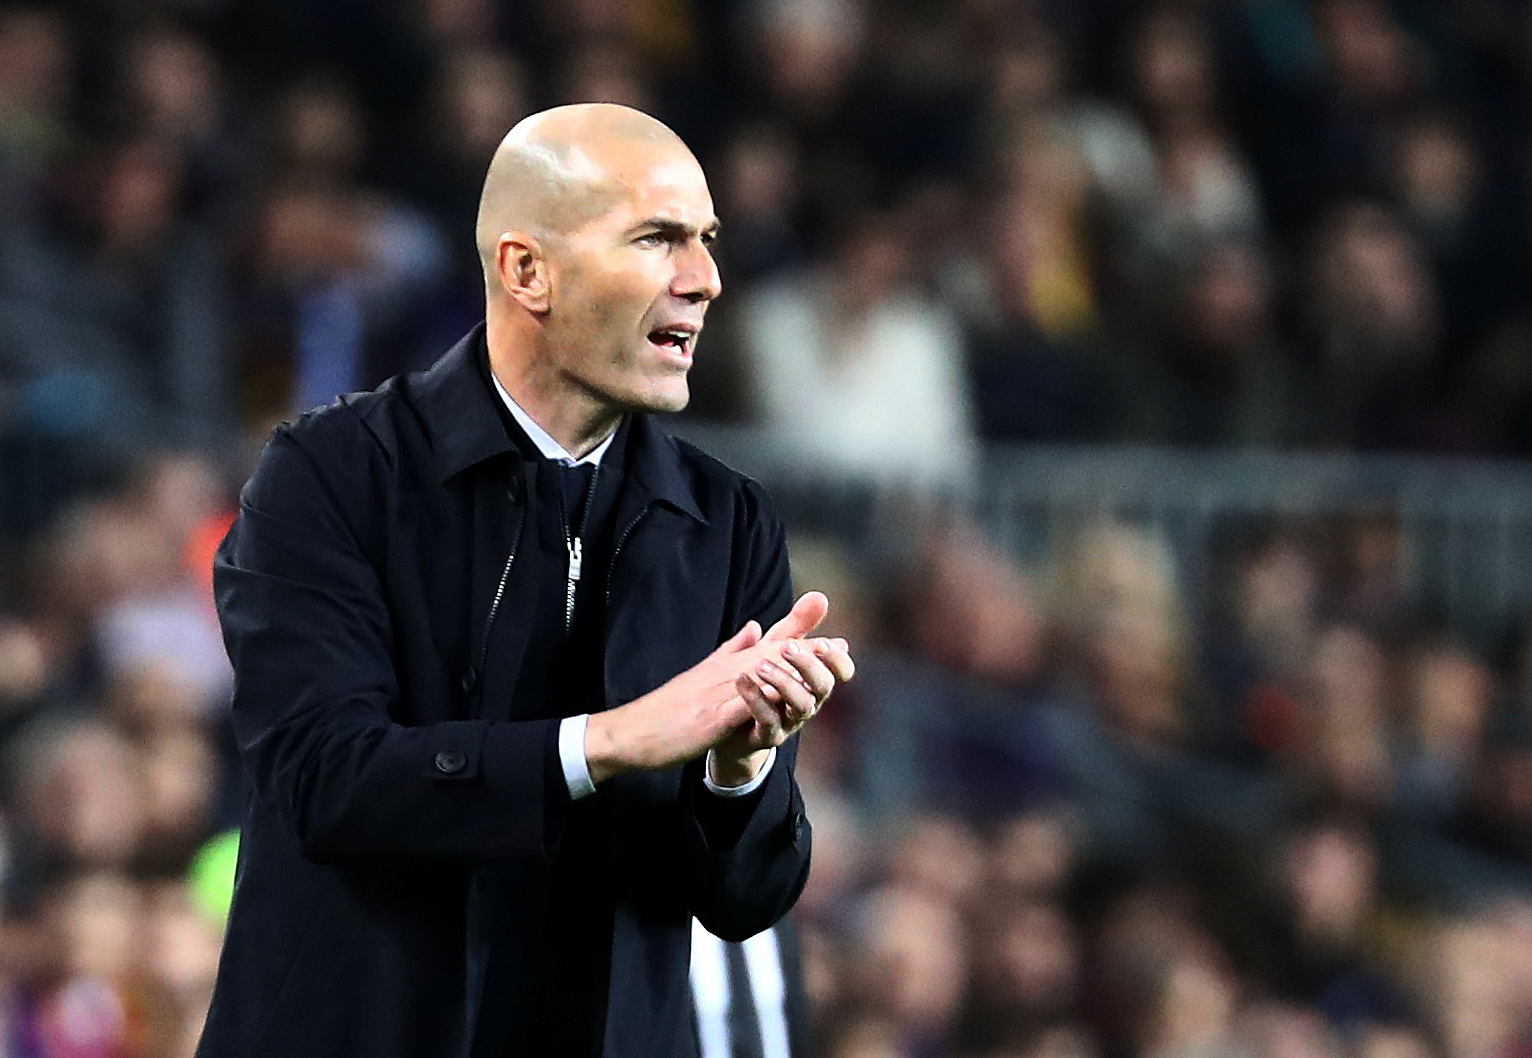 Zidane in isolation after close contact tests positive for  COVID-19_china.org.cn